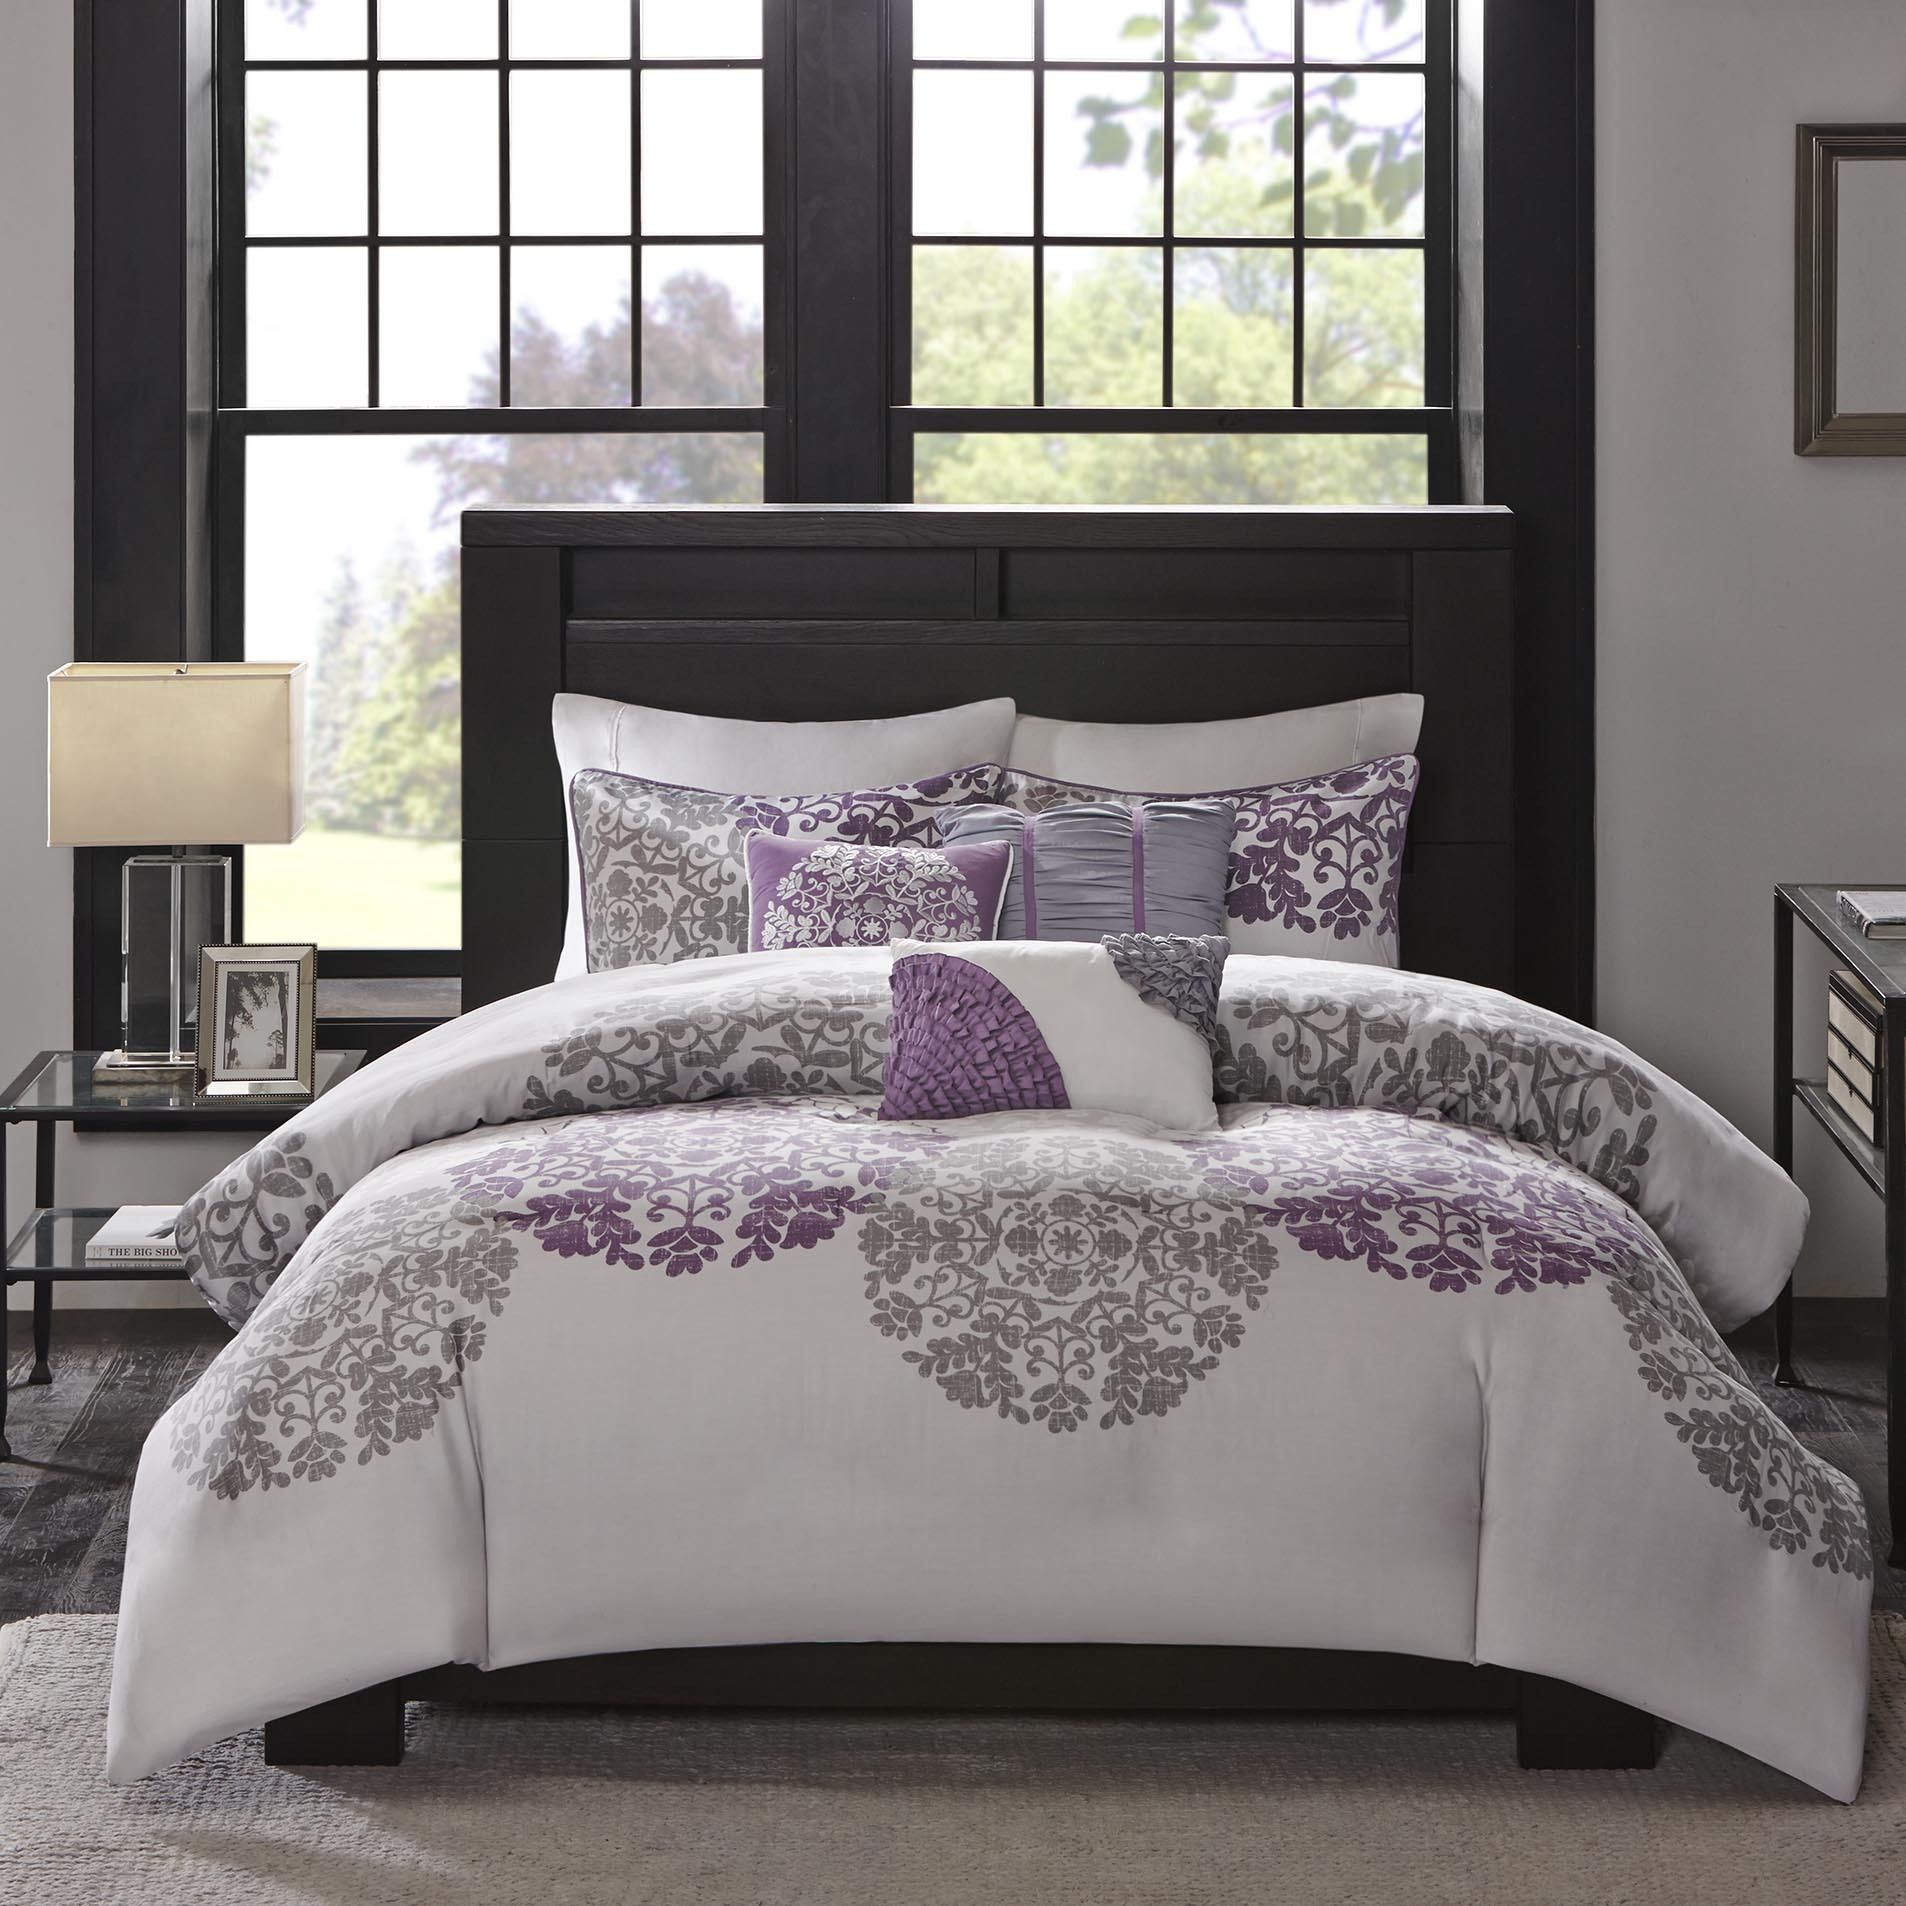 madison california are queen just living only comforter from over park set to for this up offering cover choose as hop where they piece biloxi king designer low or on full duvet